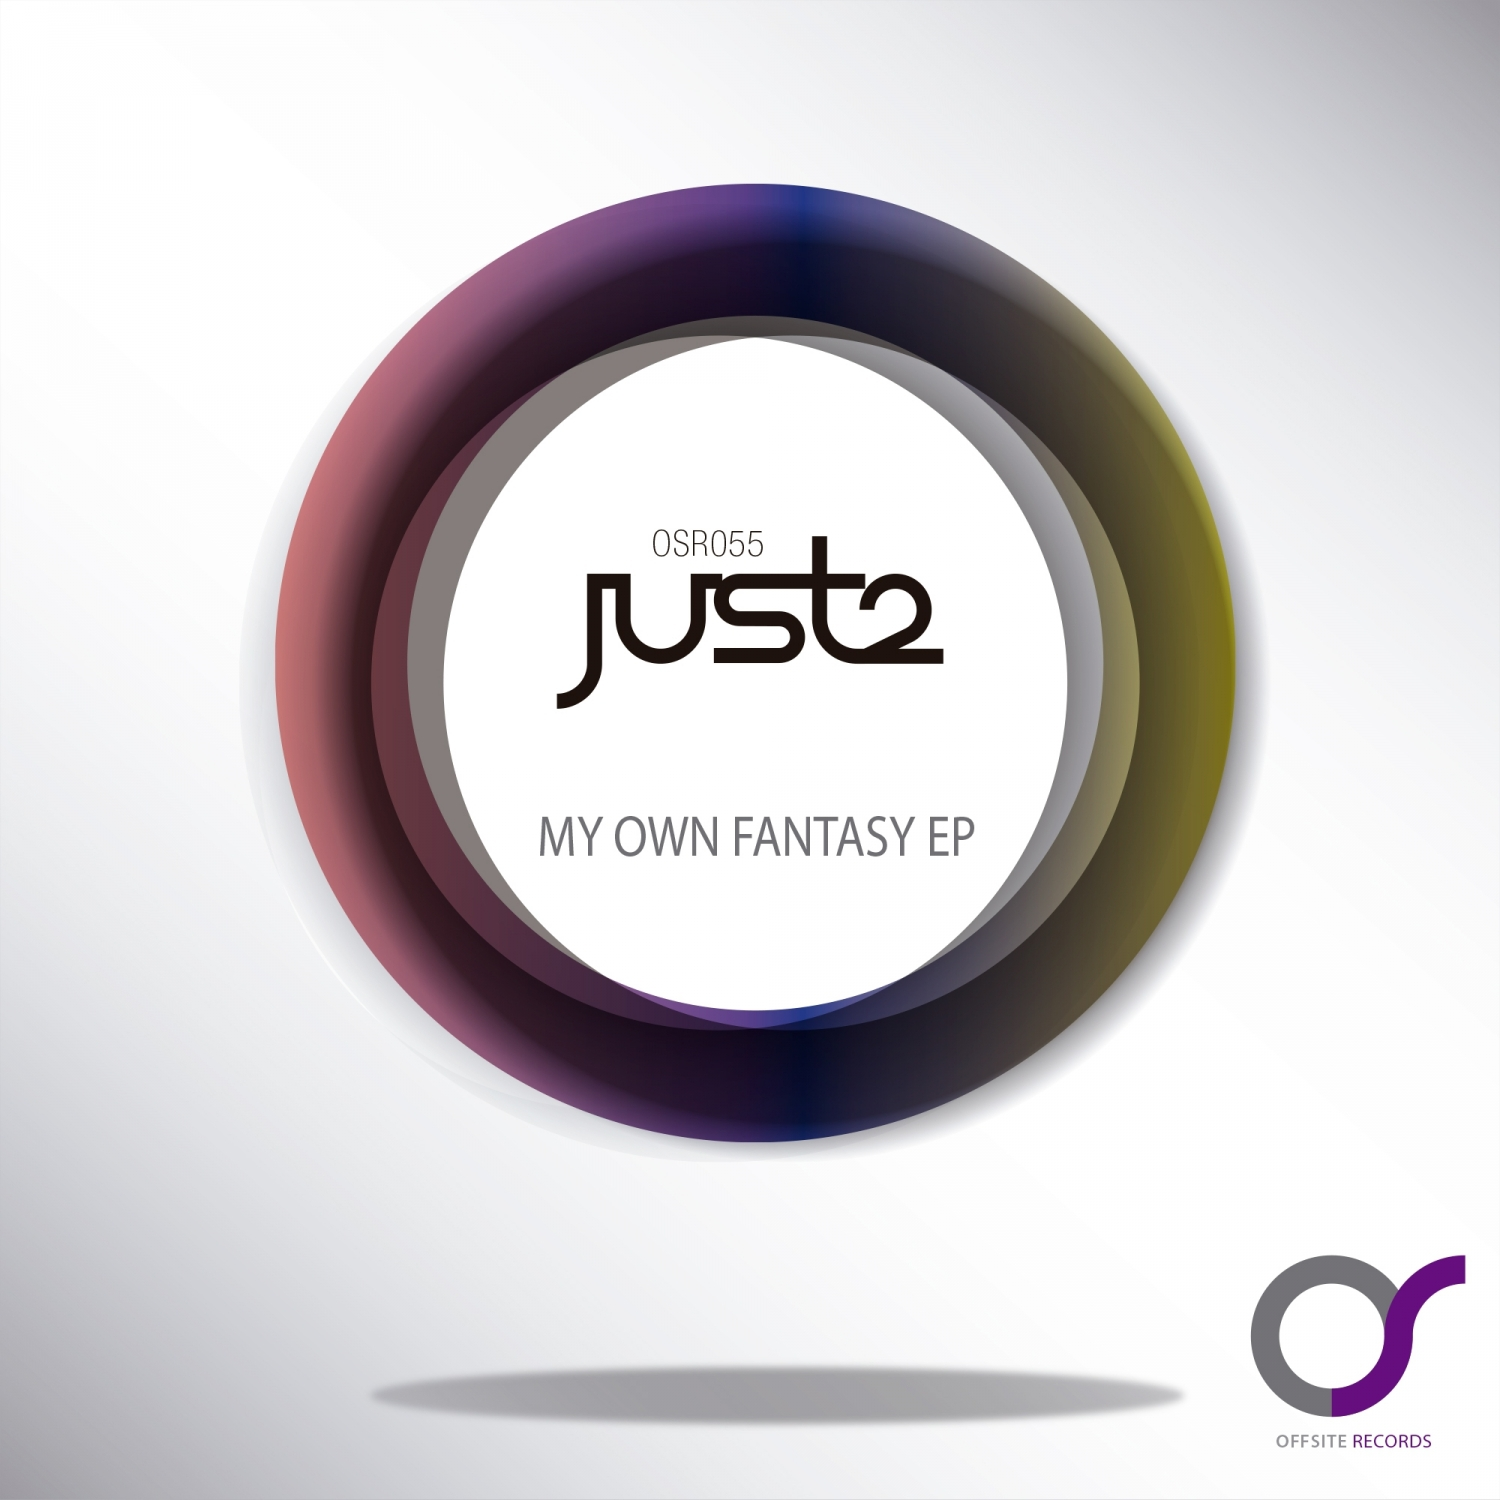 JUST2 - Roolet (Original Mix)